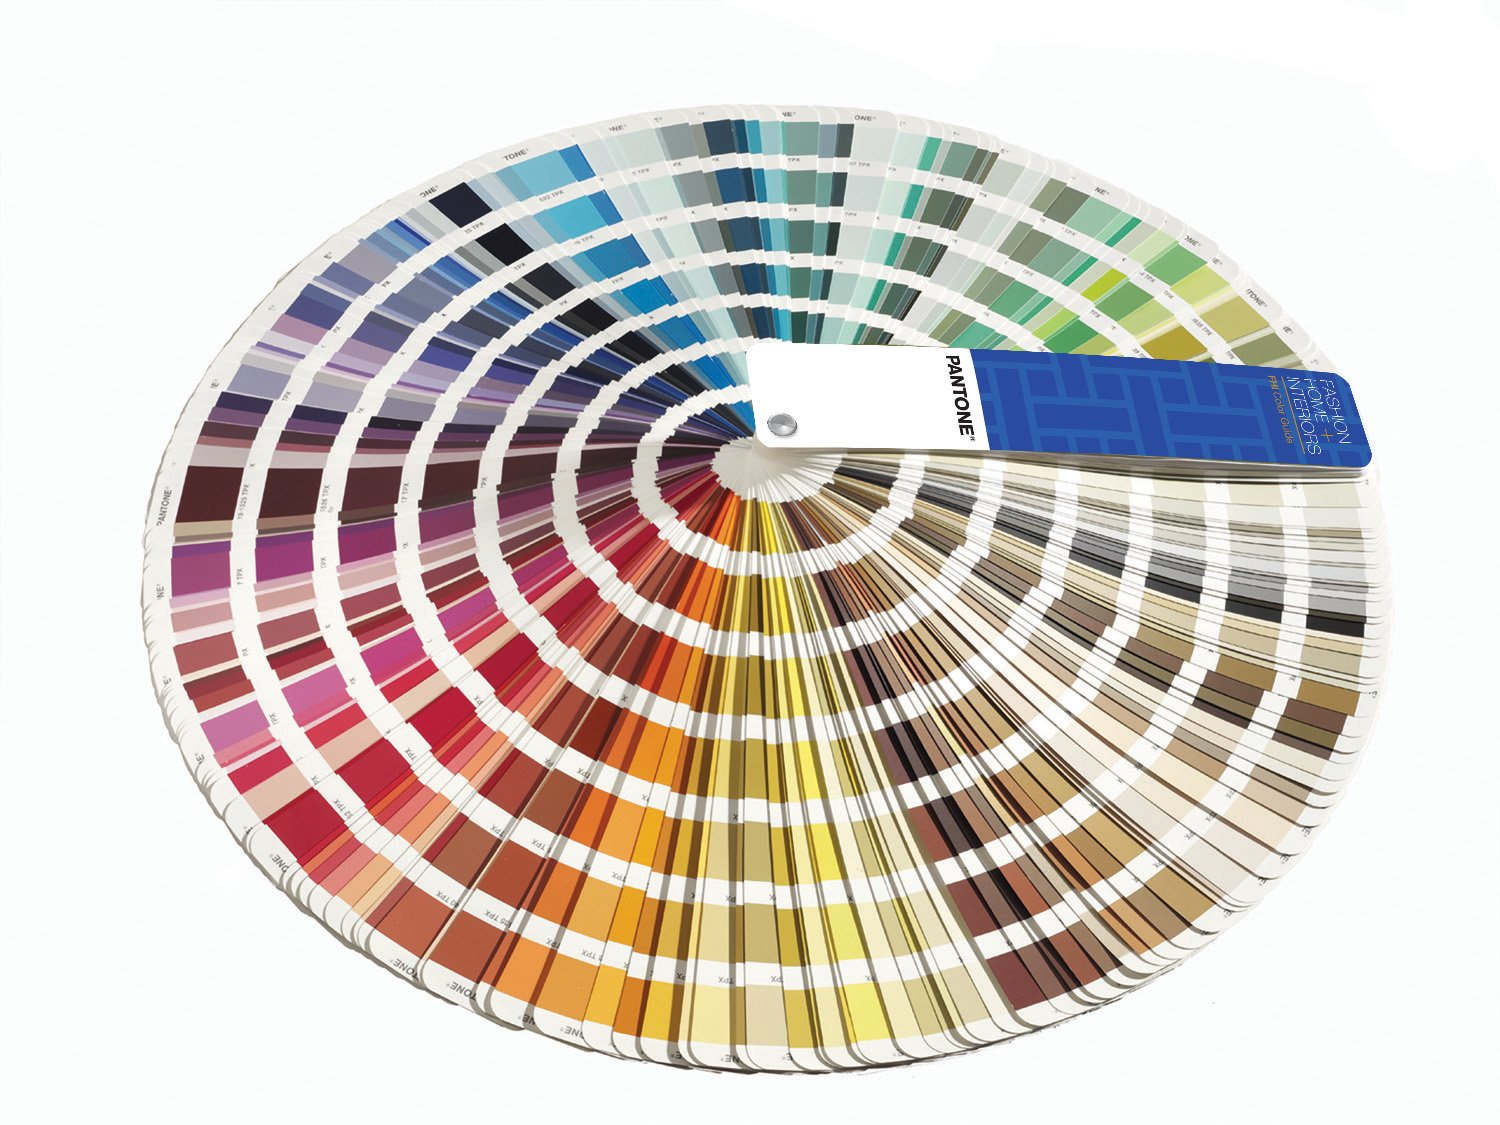 amazoncom pantone fgp200 fashion and home color guide home improvement - Pantone Color Books